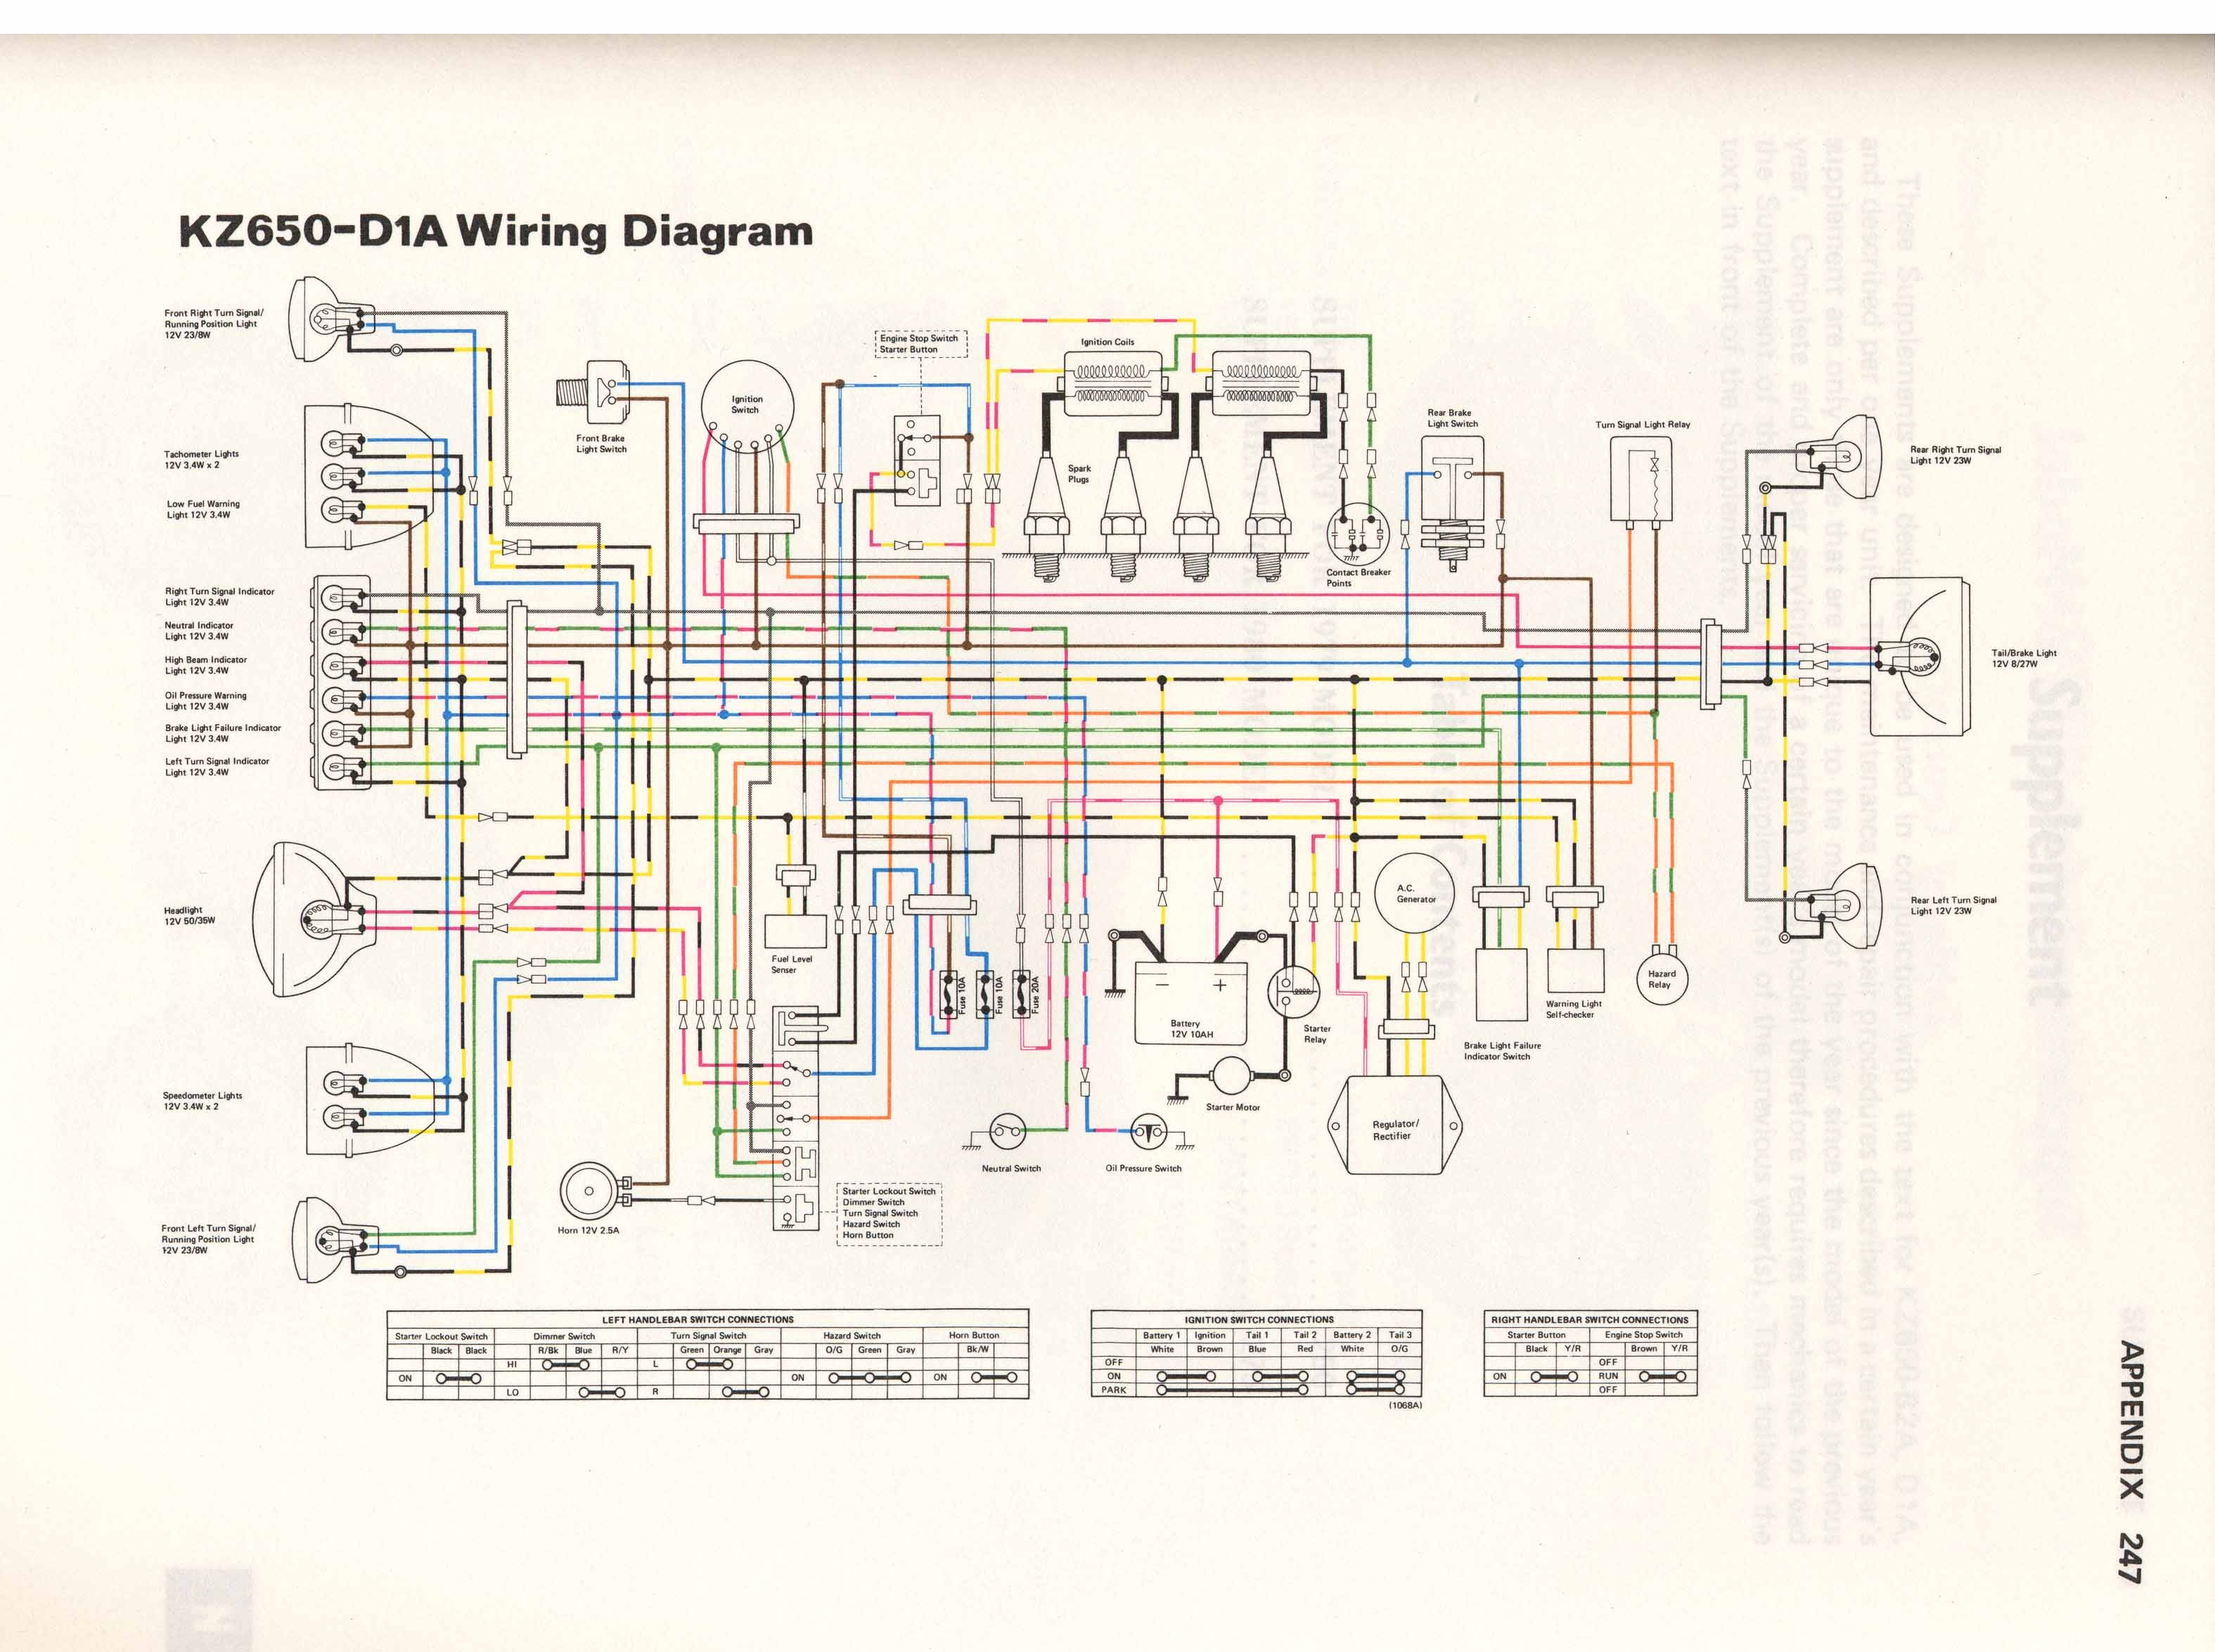 Wiring Diagram Z1000 | #1 Wiring Diagram Source on